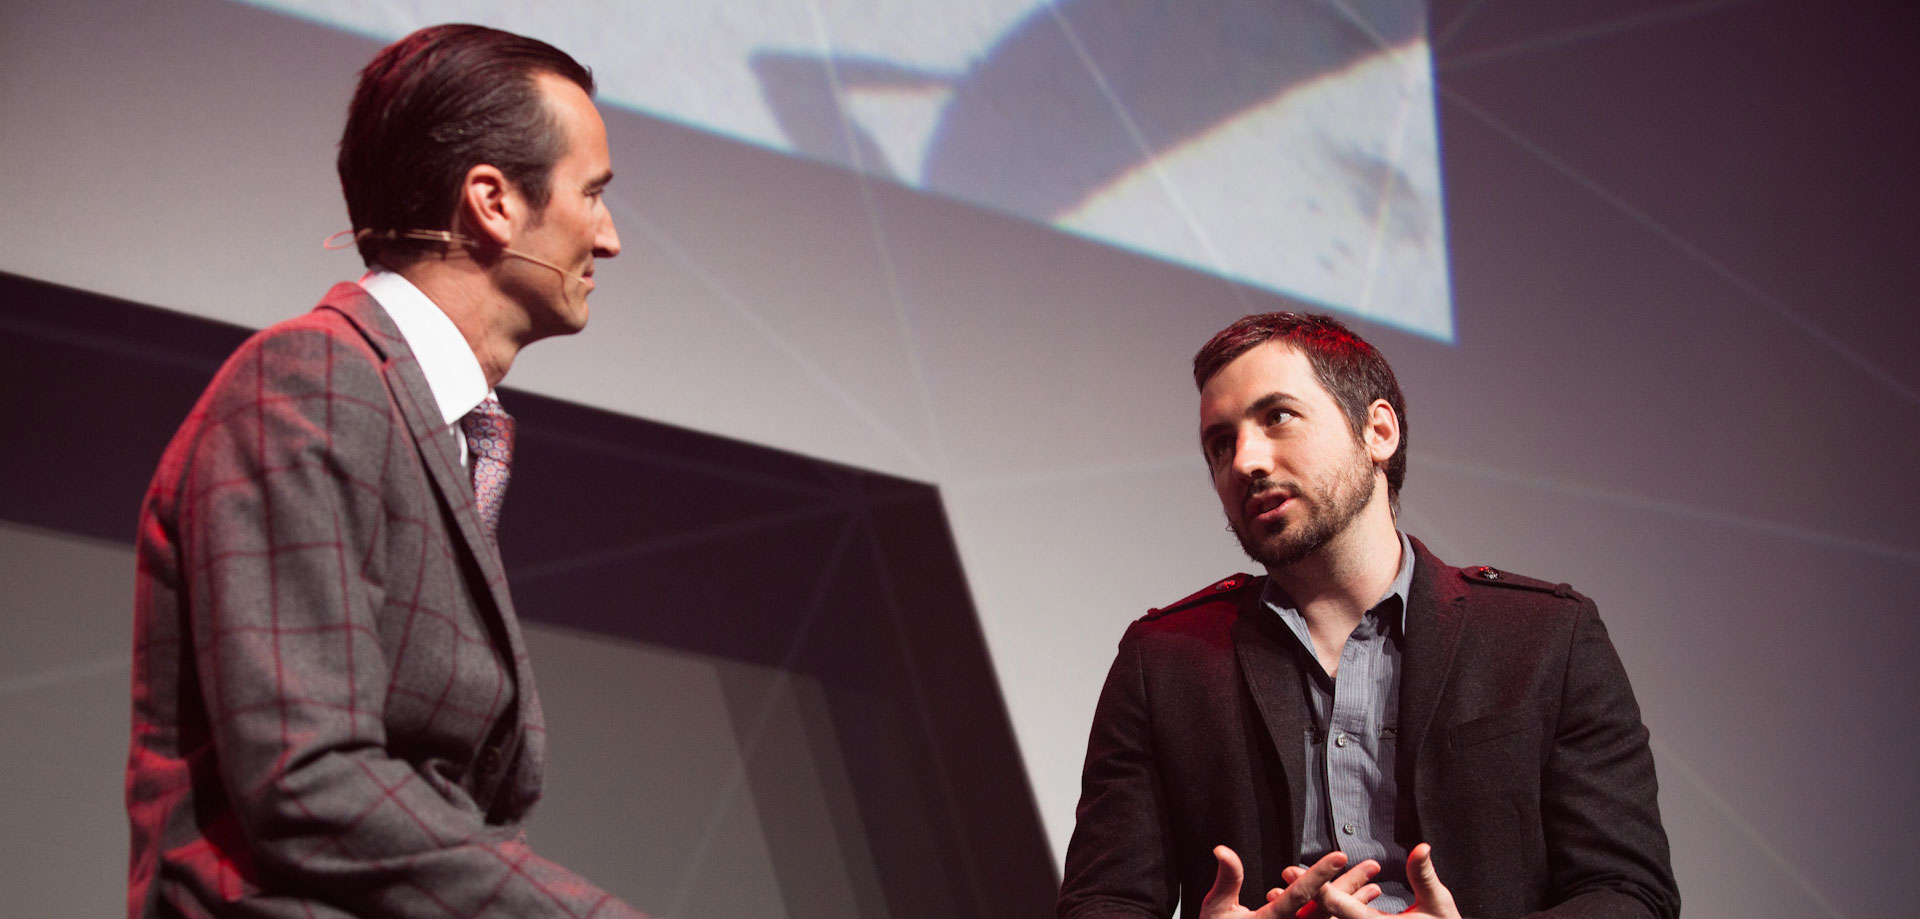 Kevin Rose wishes he had stayed CEO of Digg